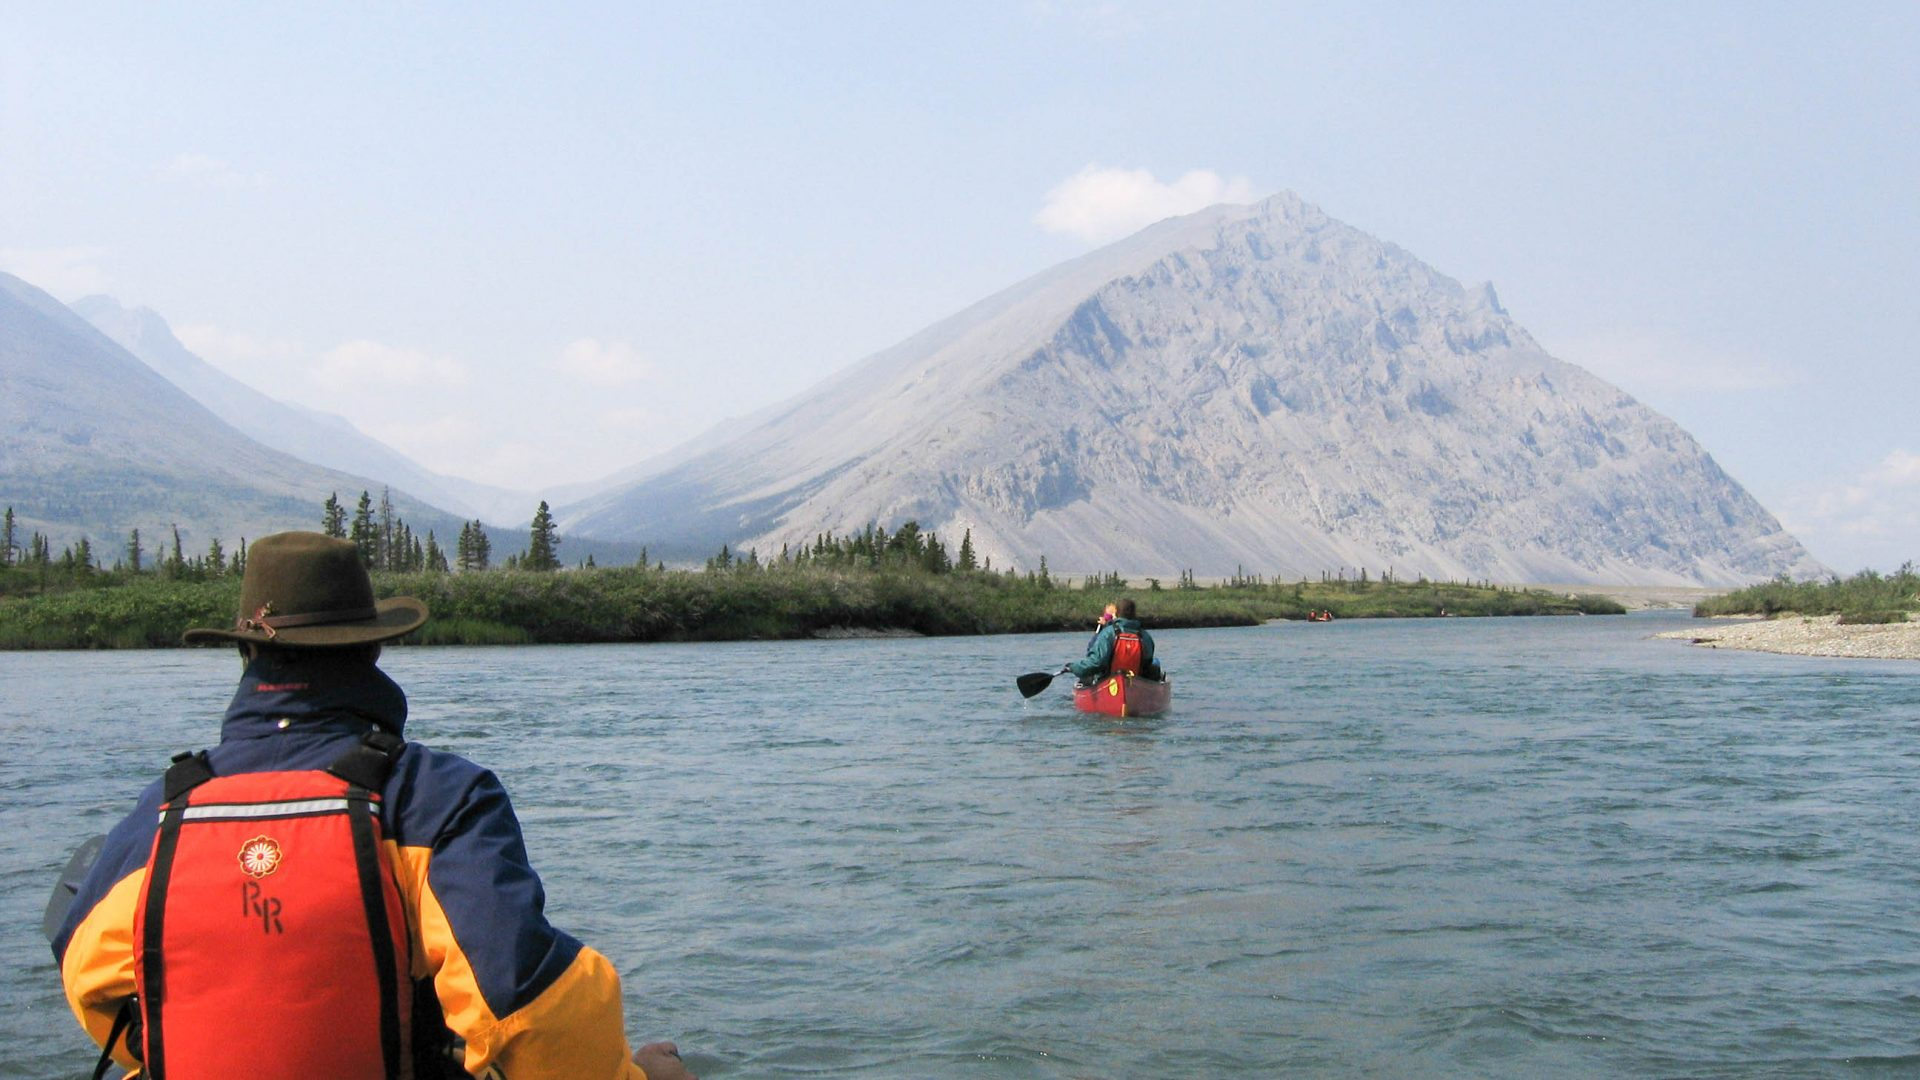 The Heart of the Yukon - Wind River on the river